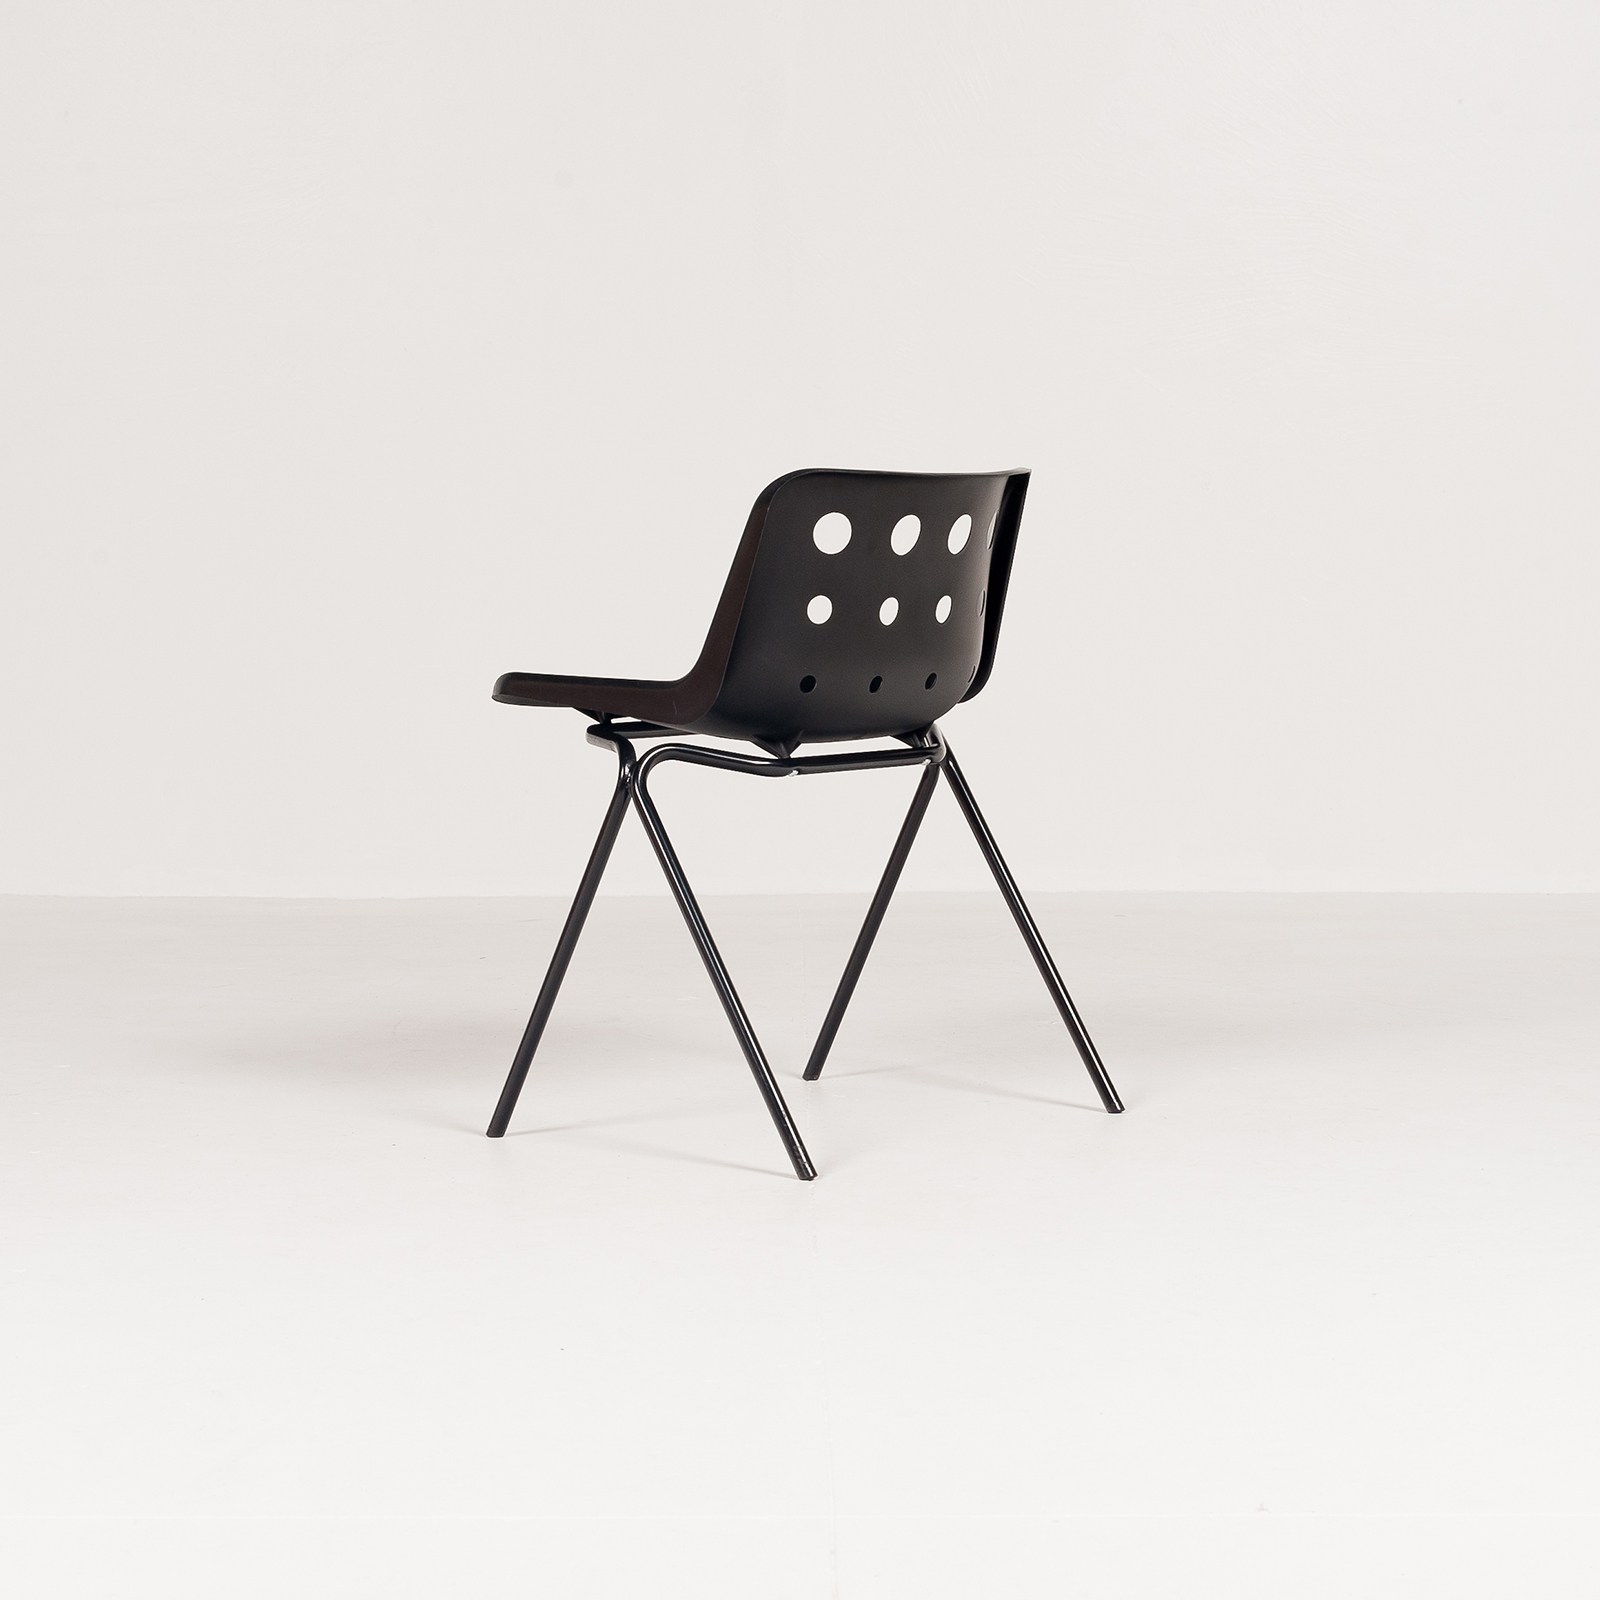 Polo Stacking Chair By Robin Day In Black Polyproylene, 1970s, England5882